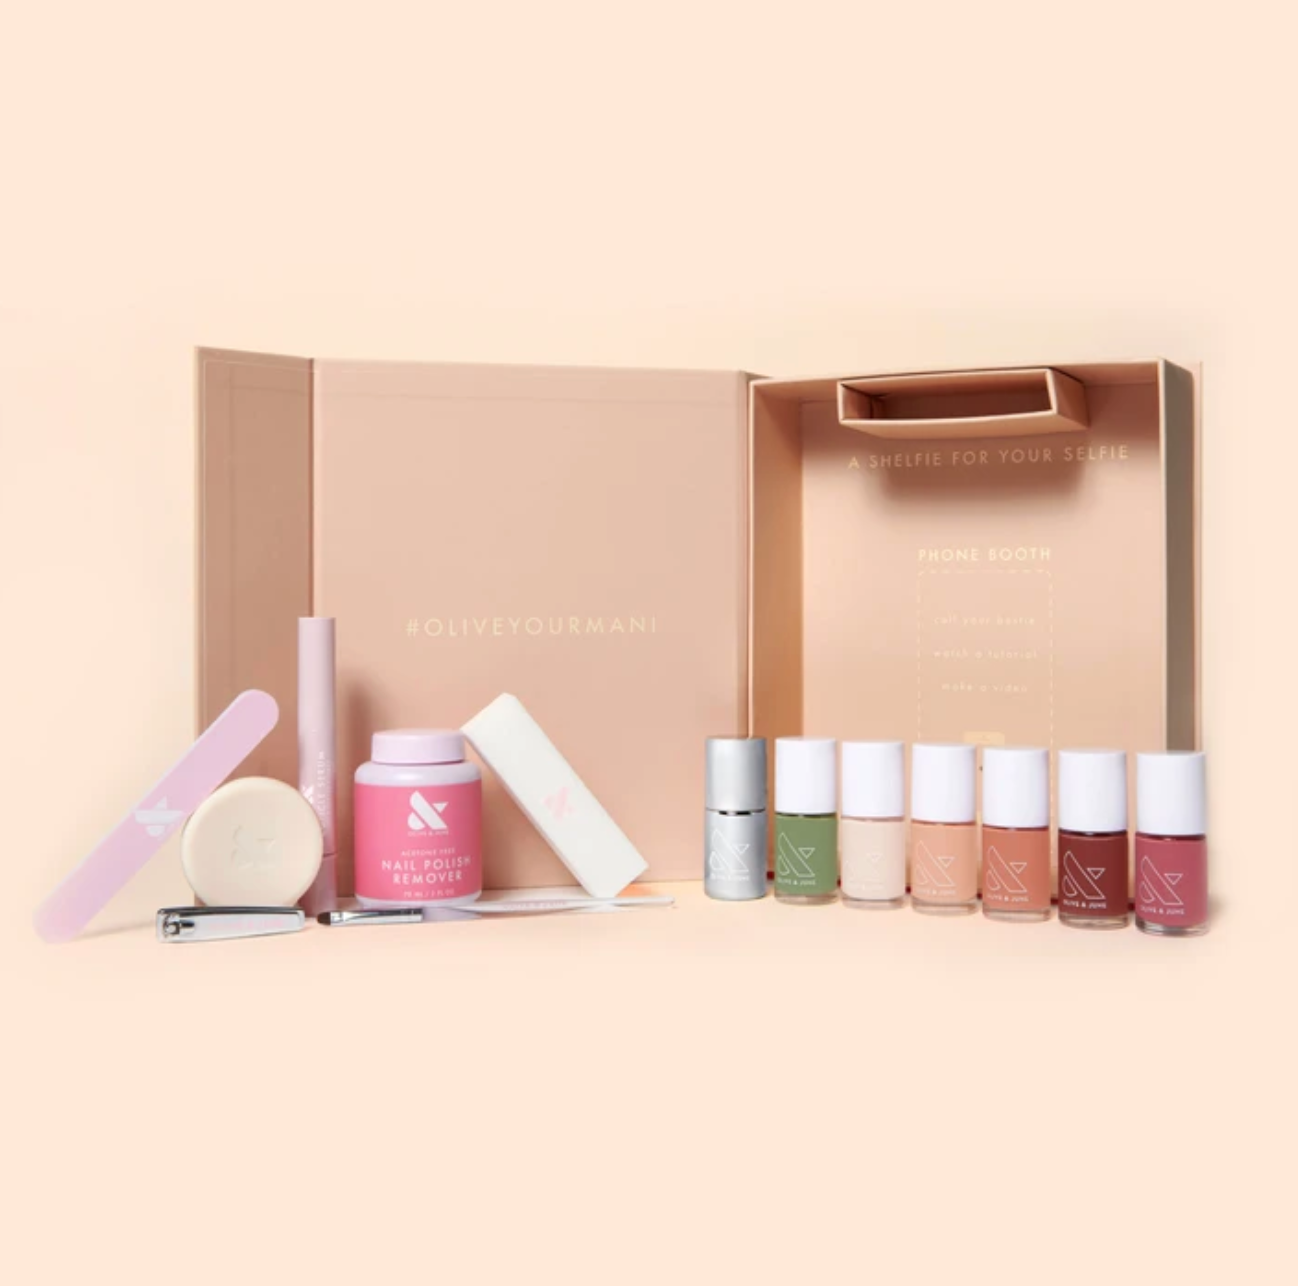 Olive & June Nailfie At-home Manicure Box